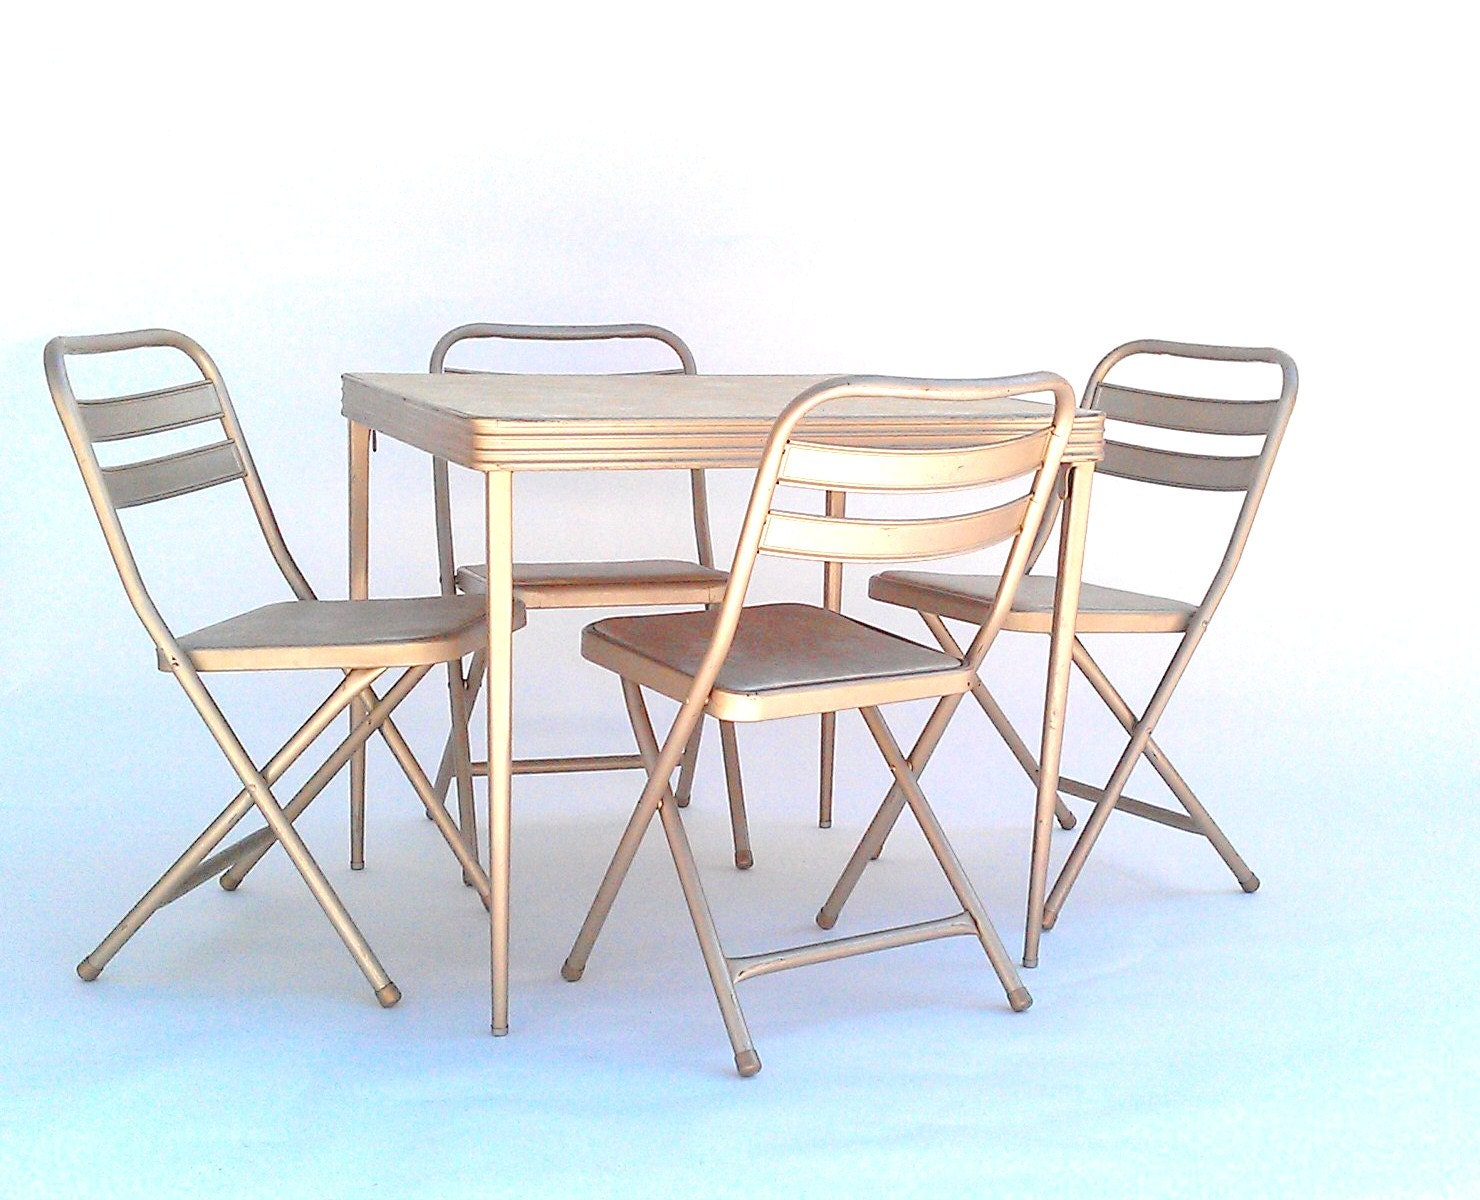 vintage folding card table and chairs by durham manufacturing. Black Bedroom Furniture Sets. Home Design Ideas